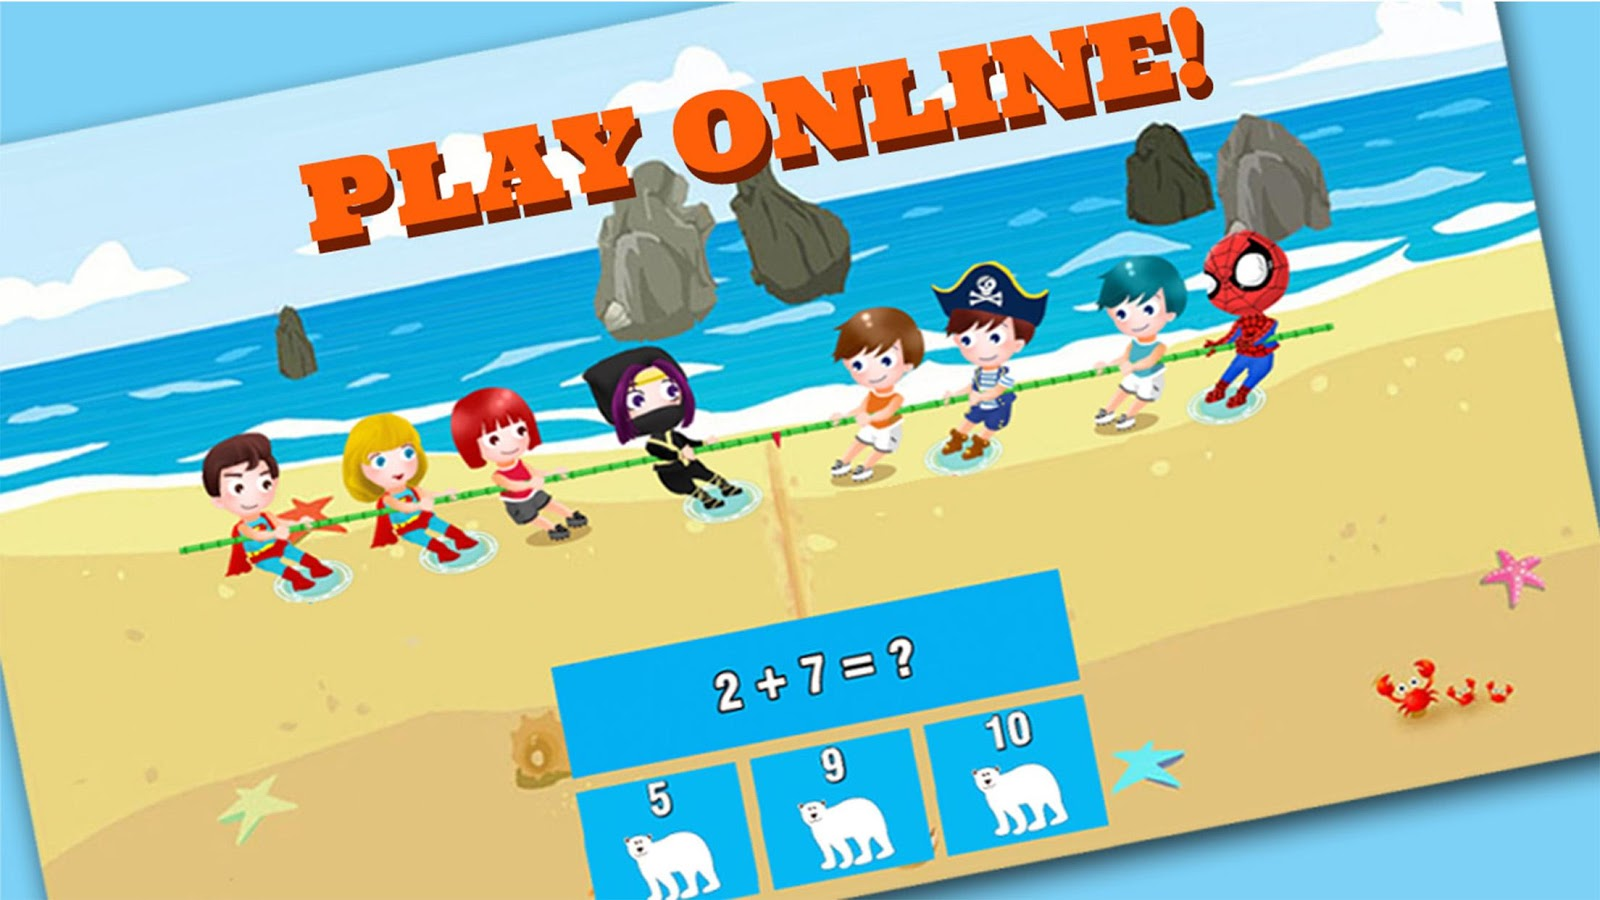 Fun math game for kids online 1.6.0 APK Download - Android ...